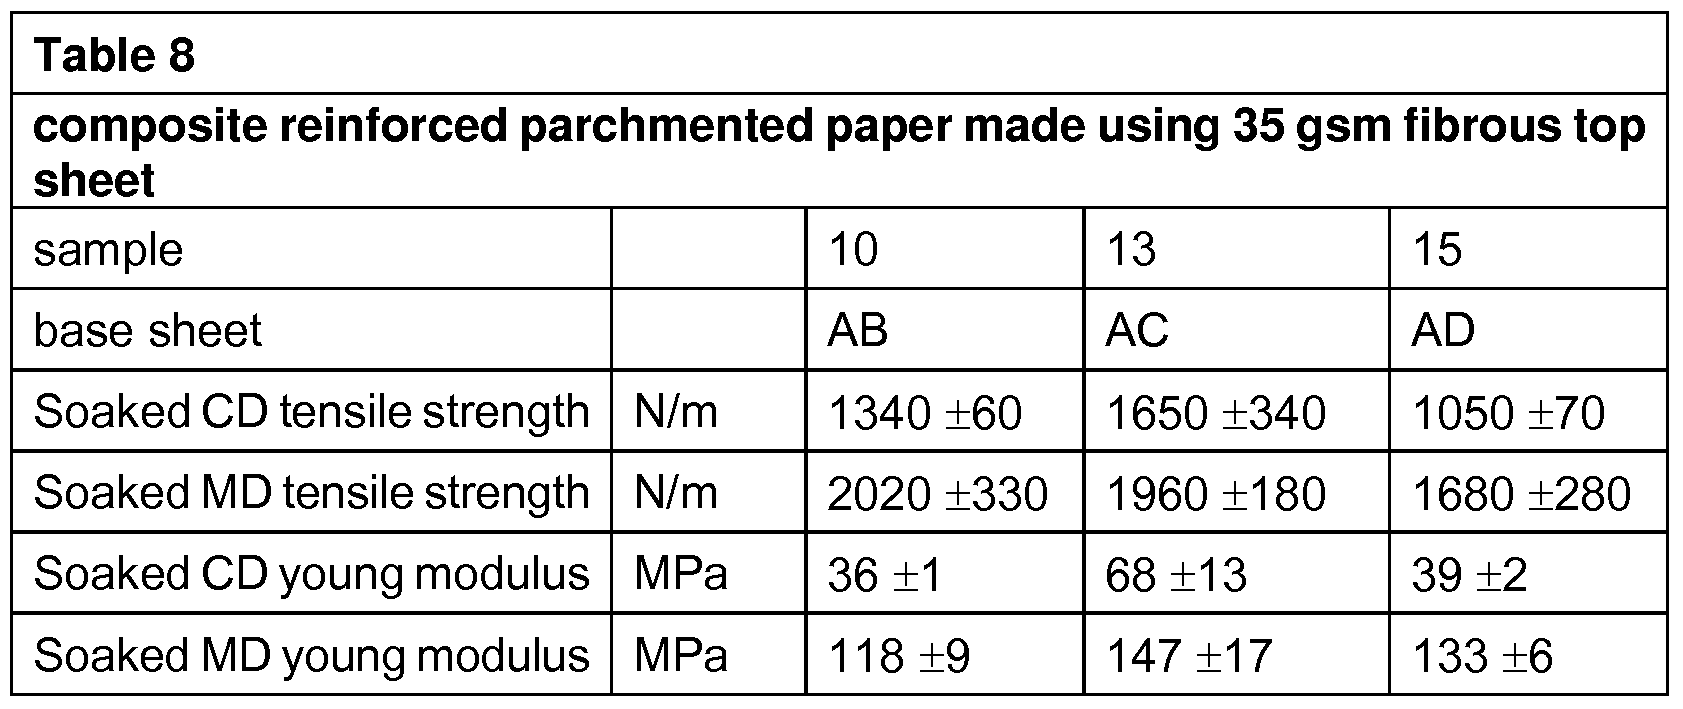 Best Salt Free Water Softener 2020 WO2008084139A1   A method of forming a reinforced parchmented